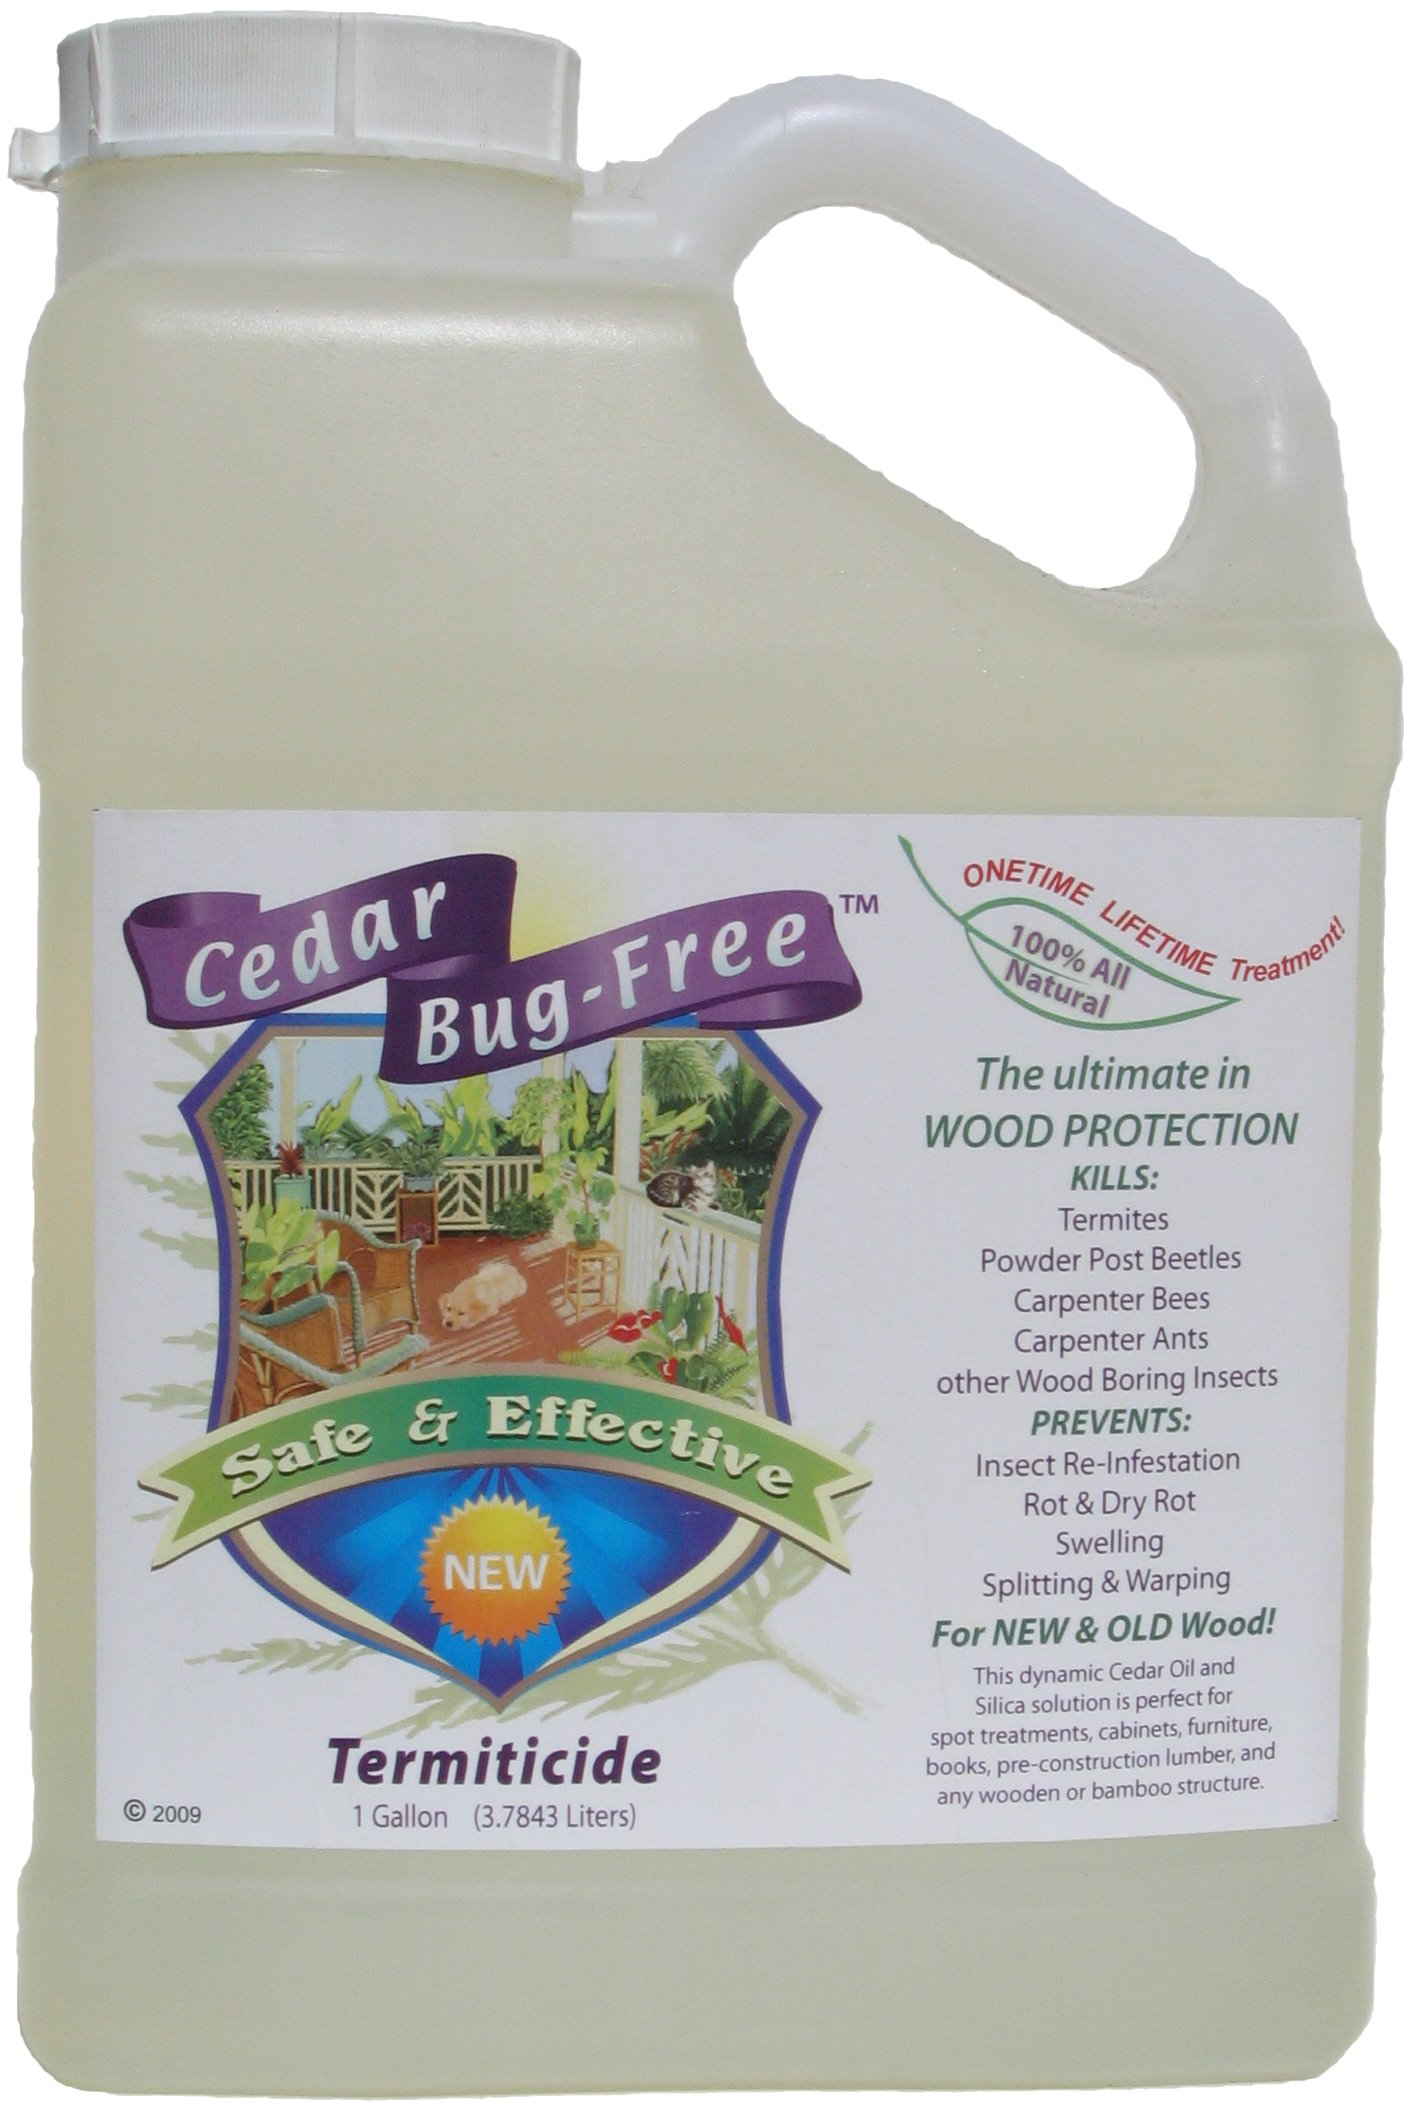 Termite Control - Cedar Bug-Free Termiticide. Natural Termite Treatment. Termite Spray - 1 gallon